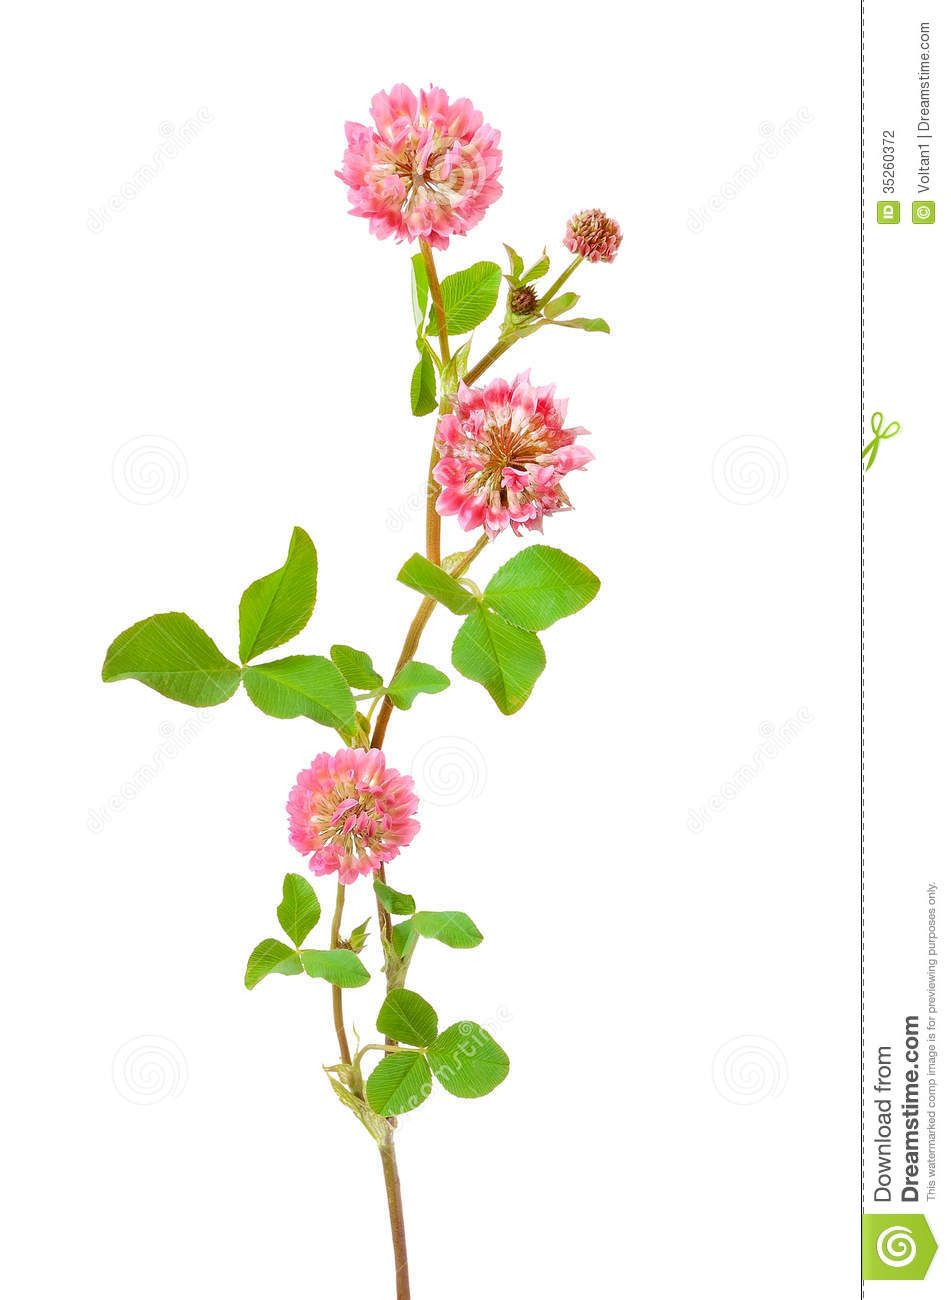 Pink Clover Flower Tattoo Idea Botanical Print Pinterest